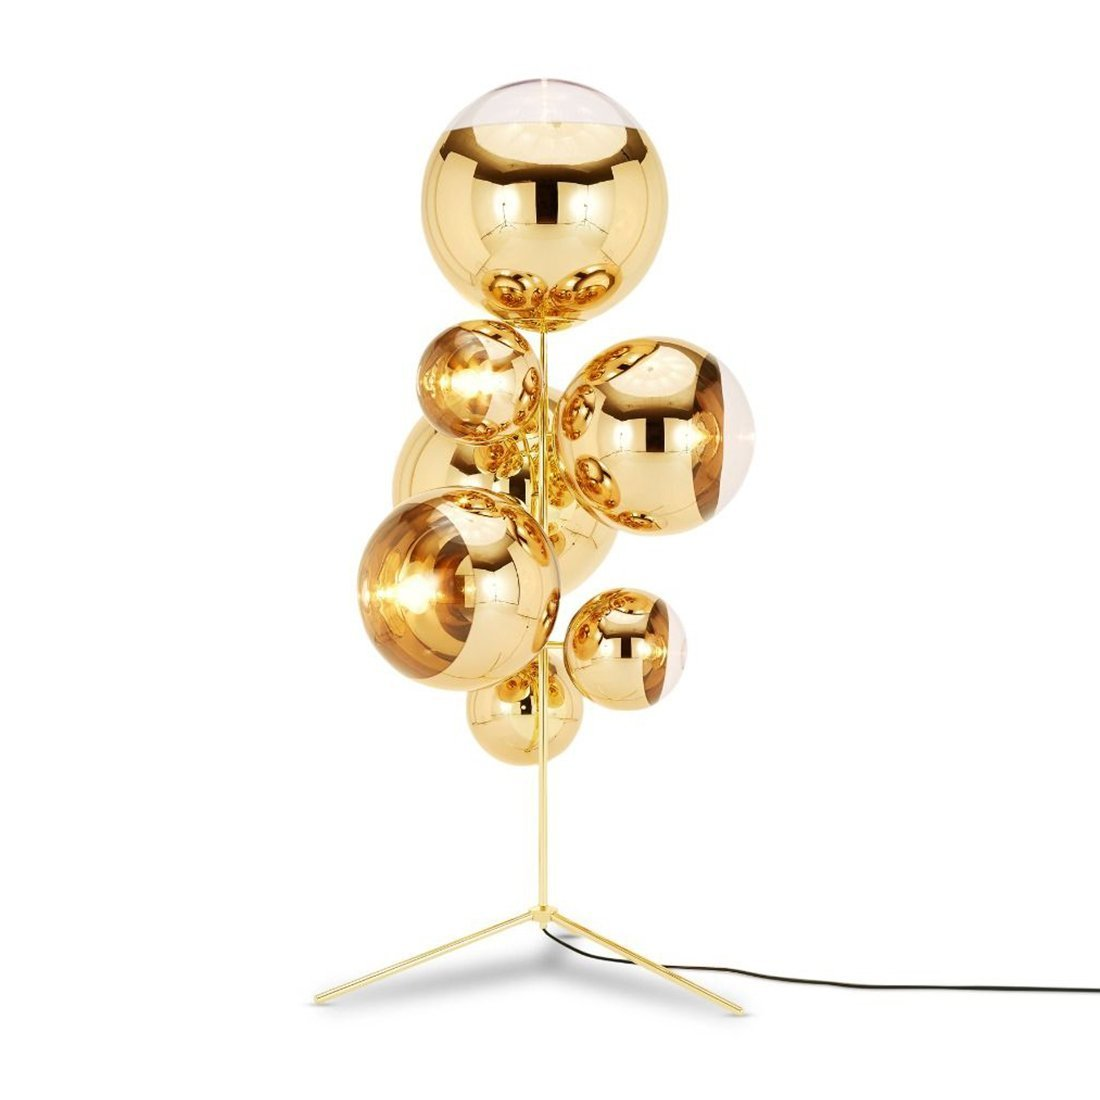 Tom Dixon Mirror Ball Vloerlamp goud